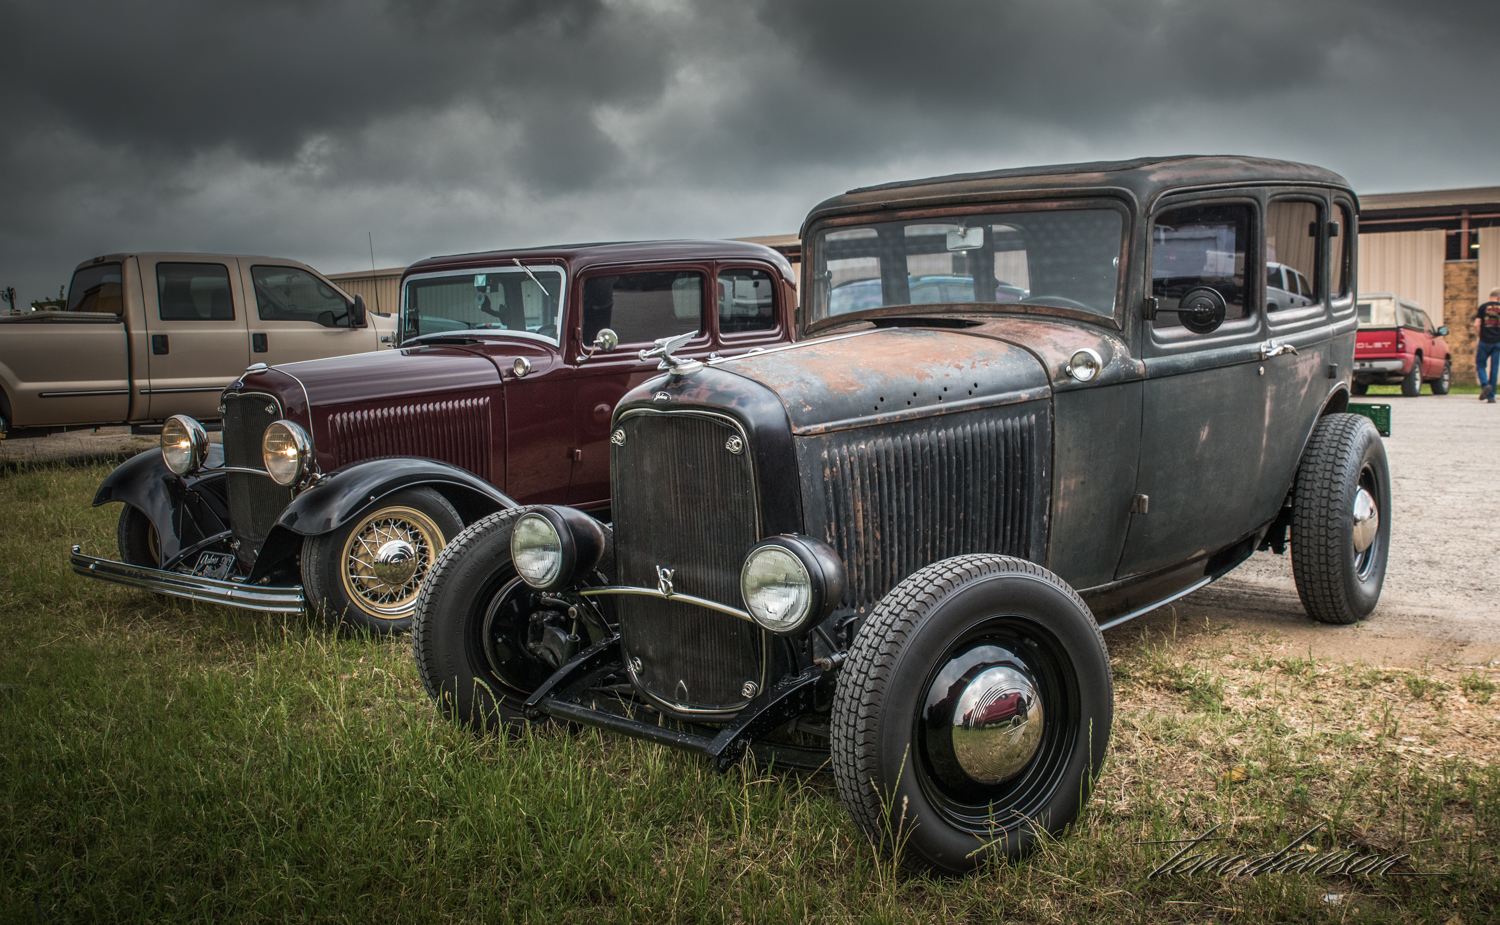 Two versions of 1932 Ford Sedan